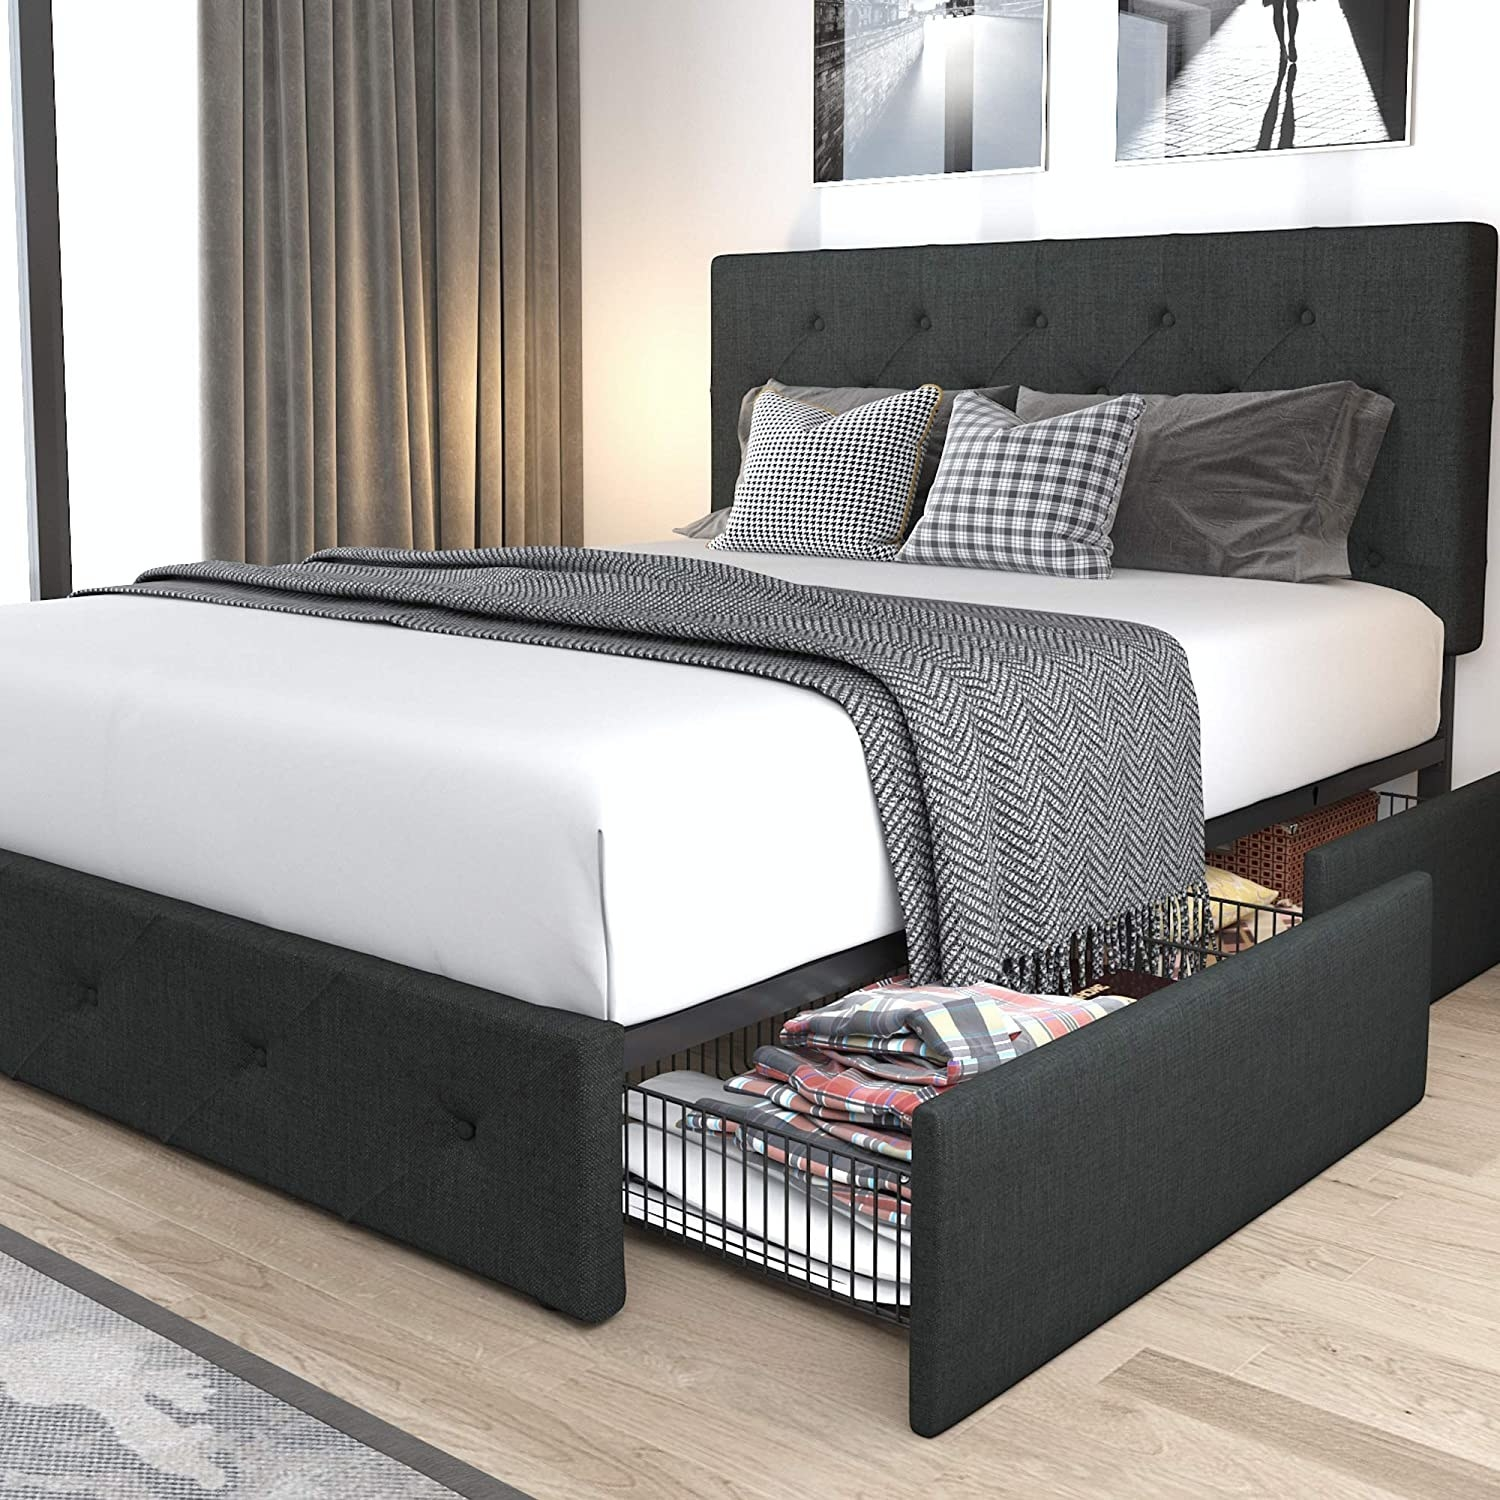 the dark grey bed frame with two drawers pulled out